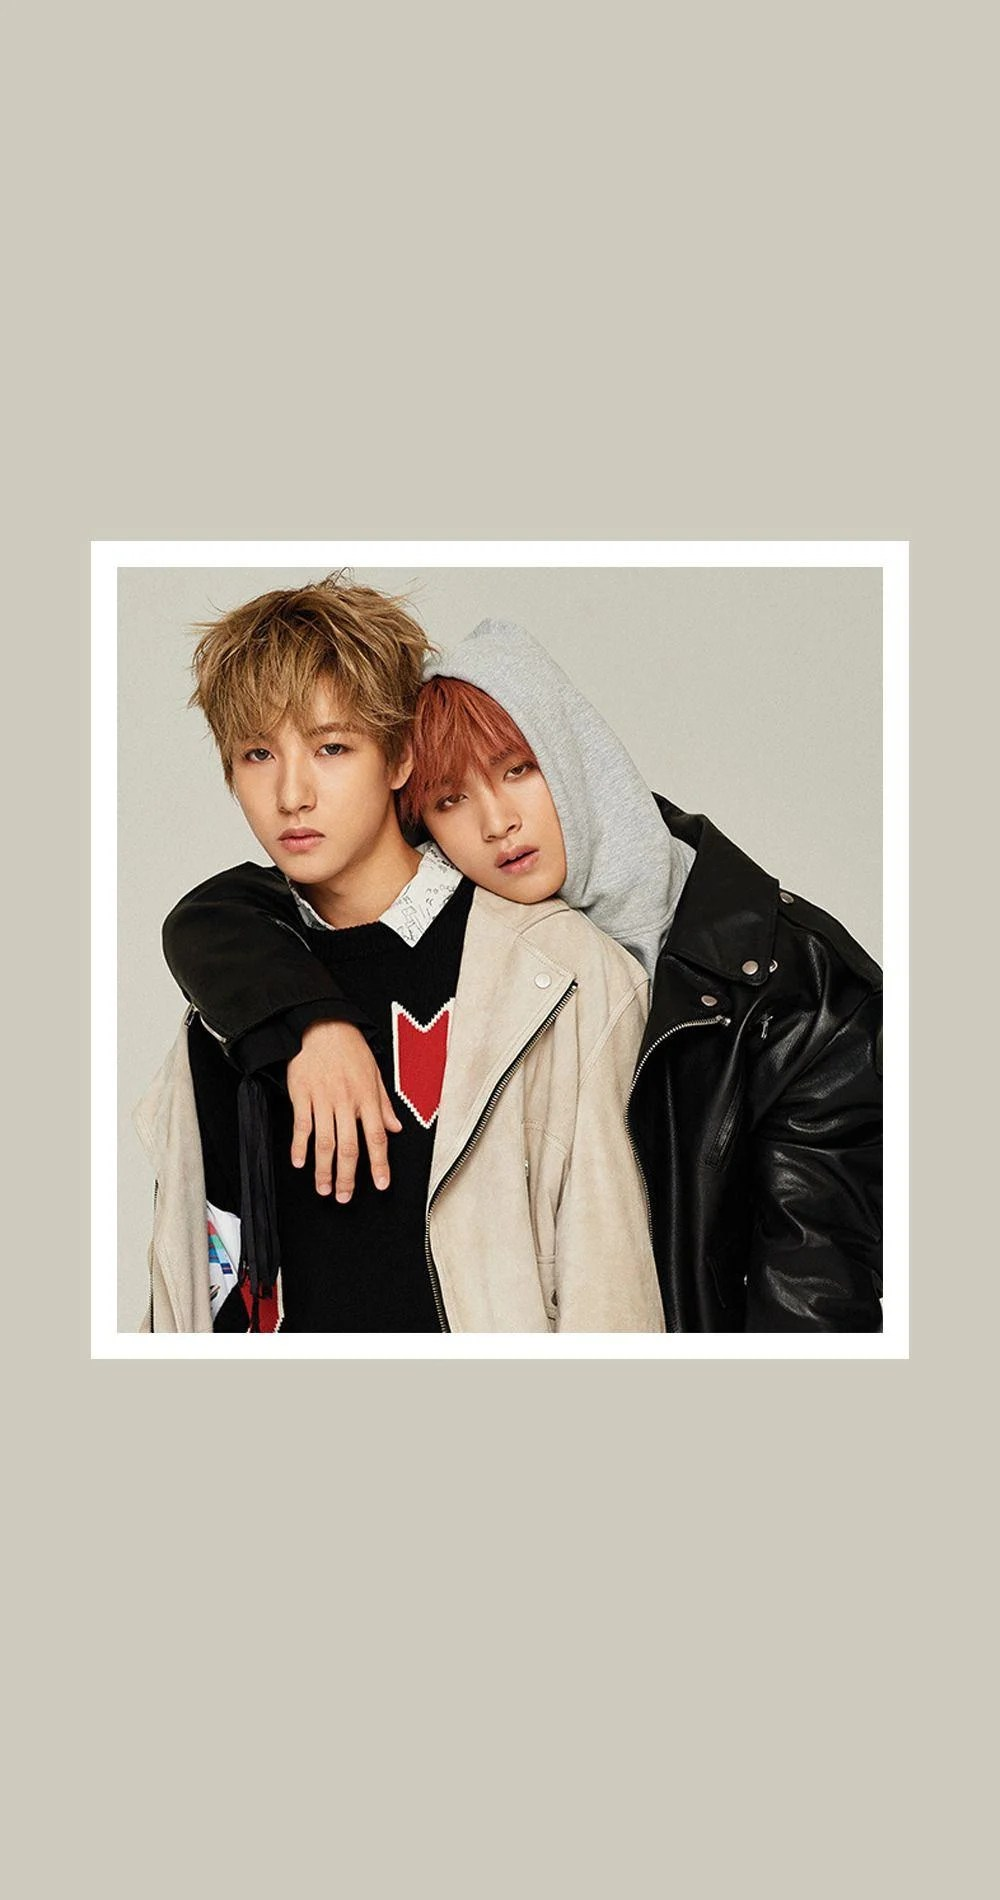 50 nct aesthetic android iphone desktop hd backgrounds wallpapers 1080p 4k. NCT Dream Jisung Wallpapers - Wallpaper Cave